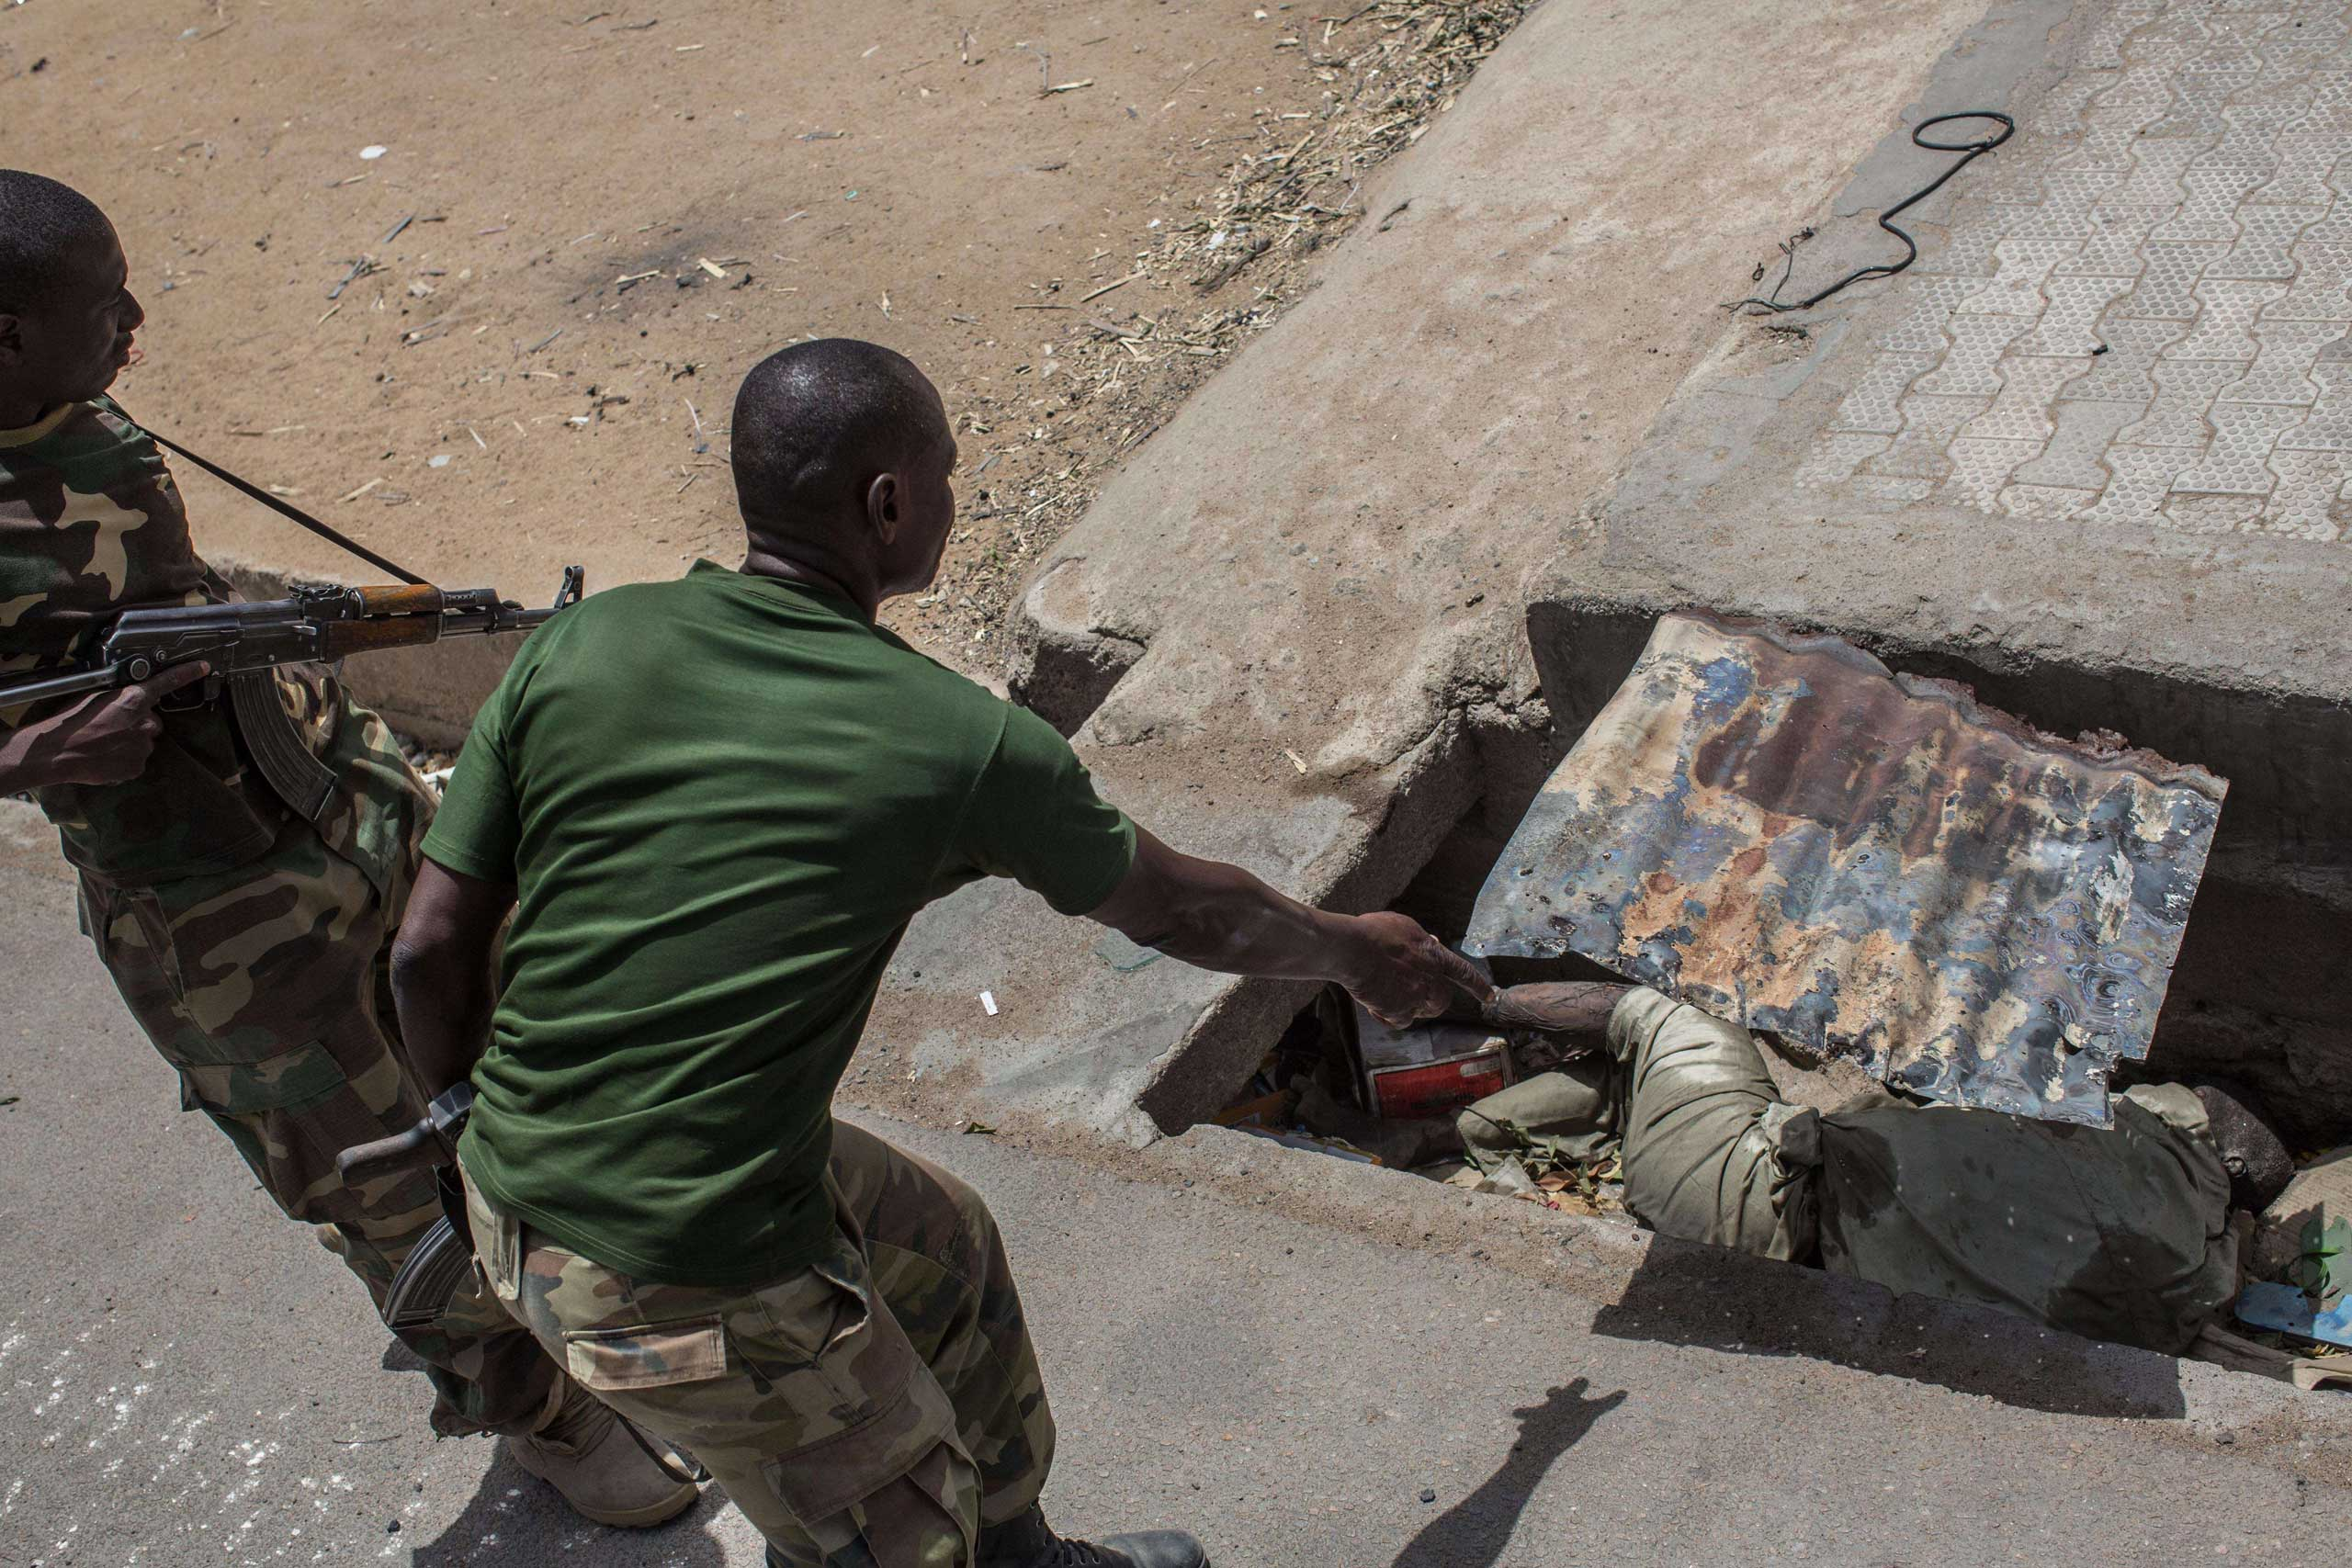 Members of the Nigerian army discover a body decomposing in a sewer in Bama on March 25, 2015.